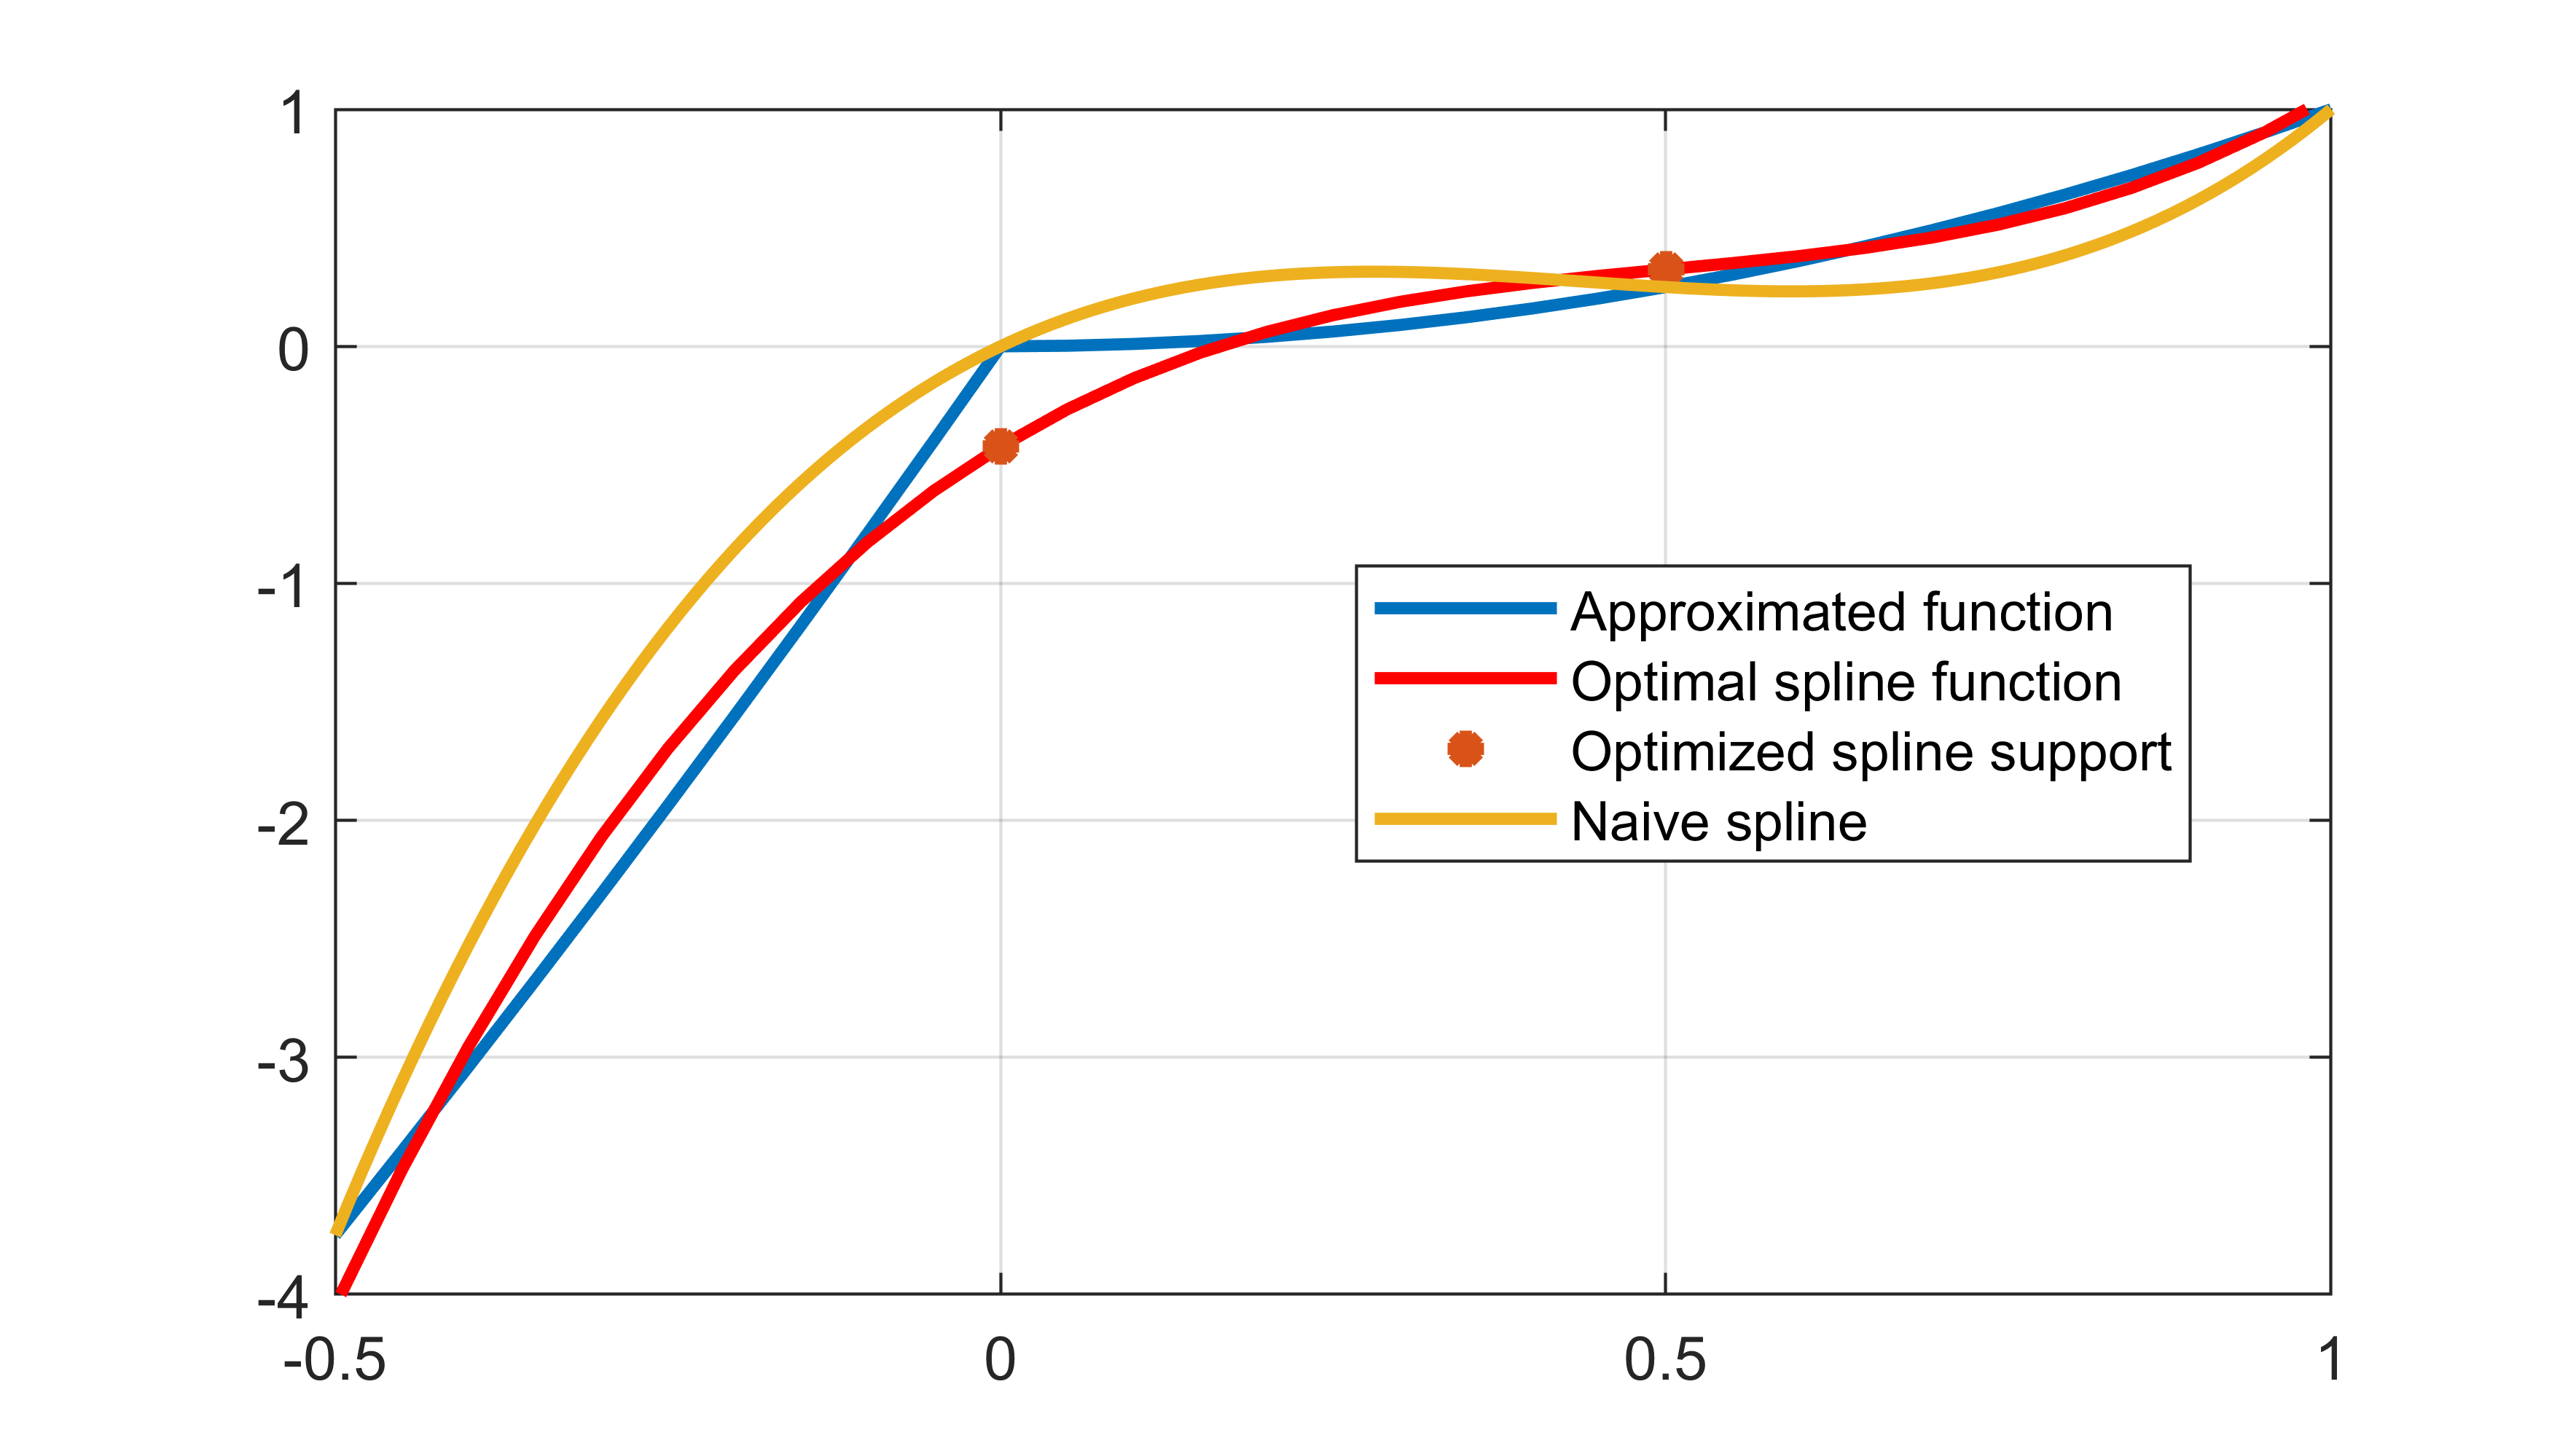 Optimized spline